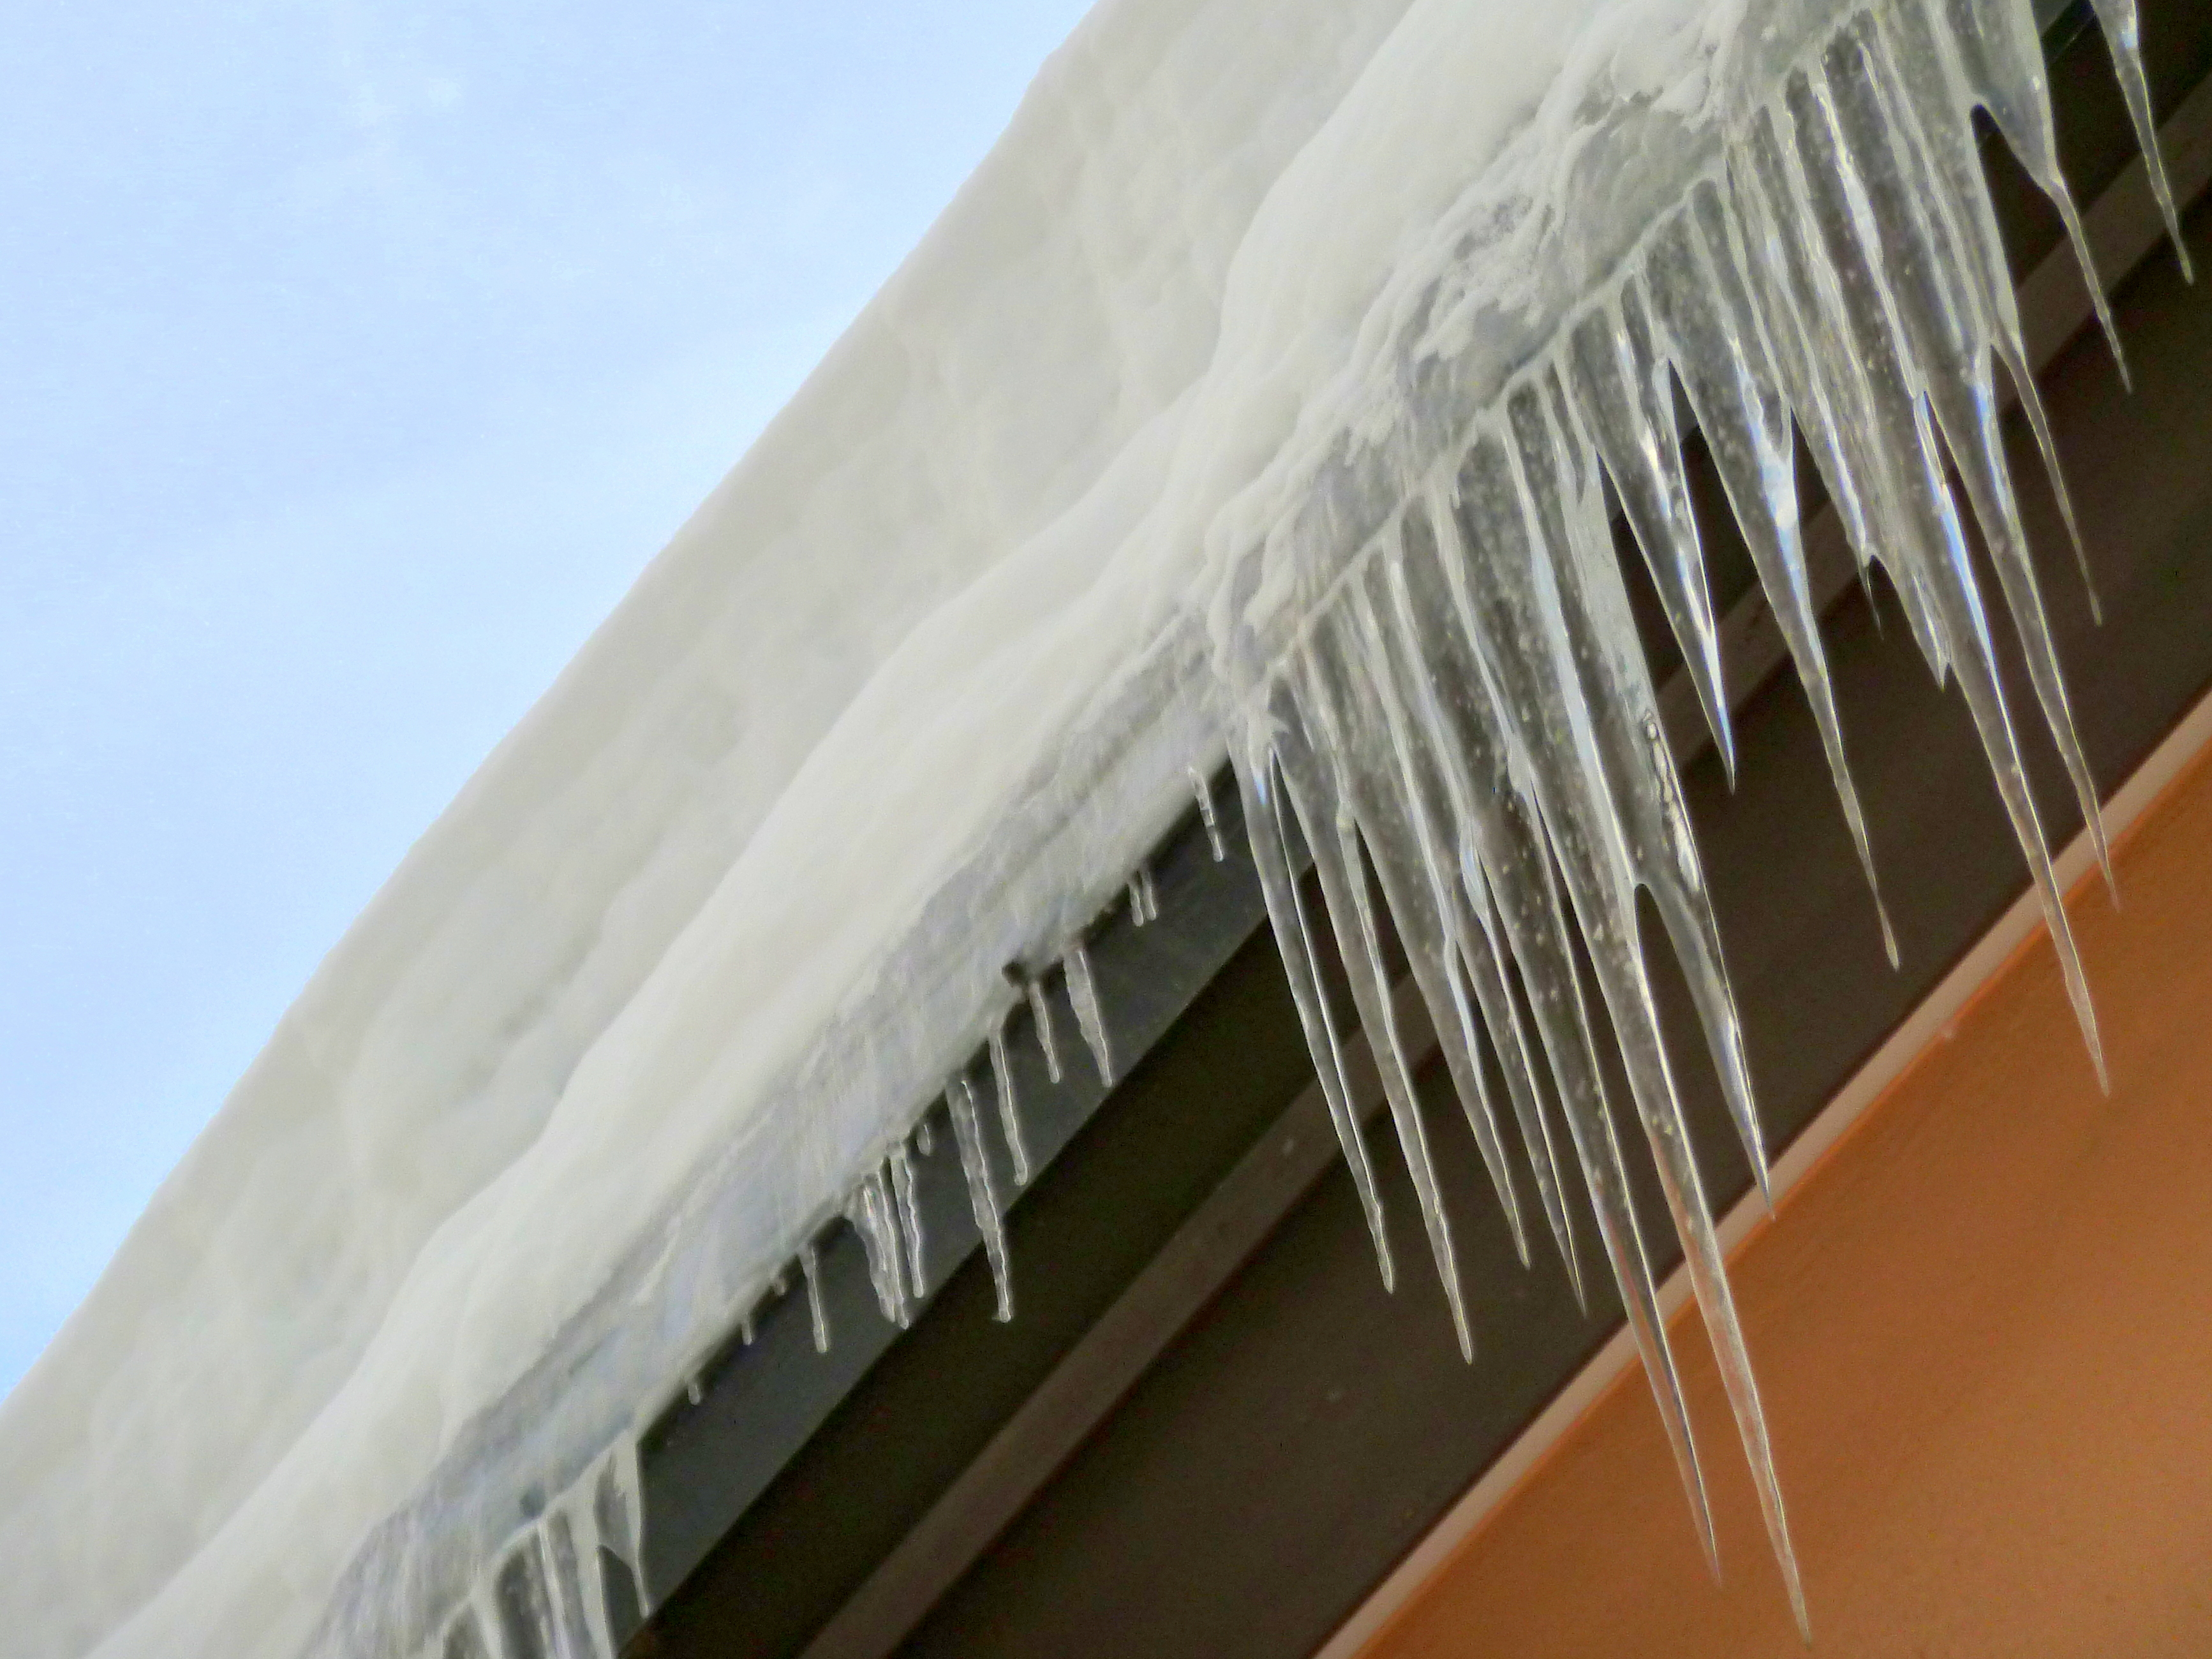 Icicles in winter of Sapporo